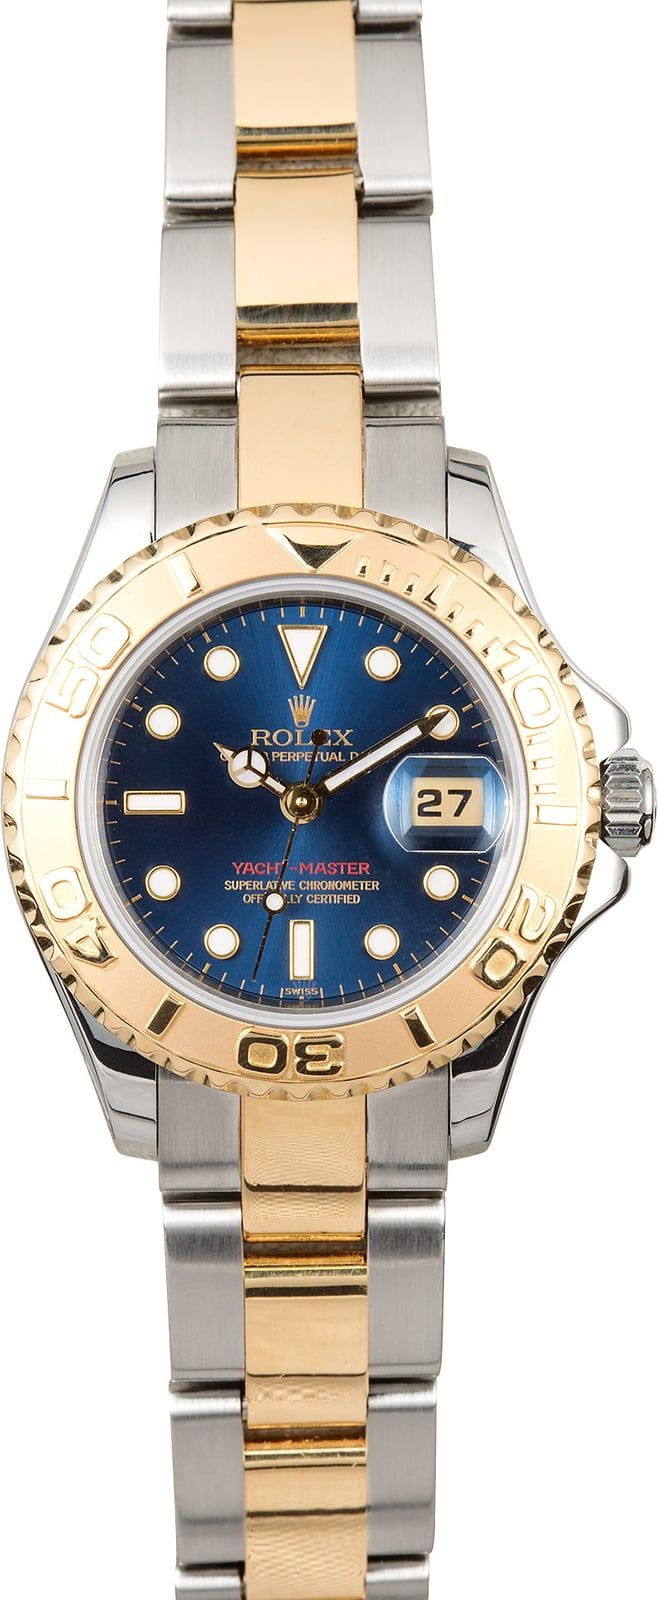 Manufacturer: Rolex   Model Name/Number: Yacht-Master 69623   Serial/Year: U 1997-1999   Grade: (What's This?) II   Gender: Ladies   Features: Automatic 2135 movement, scratch-resistant sapphire crystal, waterproof screw-down crown, Quickset date   Case: Stainless steel w/ 18k yellow gold rotatable time-lapse bezel (29mm)   Dial: Blue w/ white luminous hour markers and hands   Bracelet: Stainless steel and 18k yellow gold Oyster w/ Oysterlock cla...